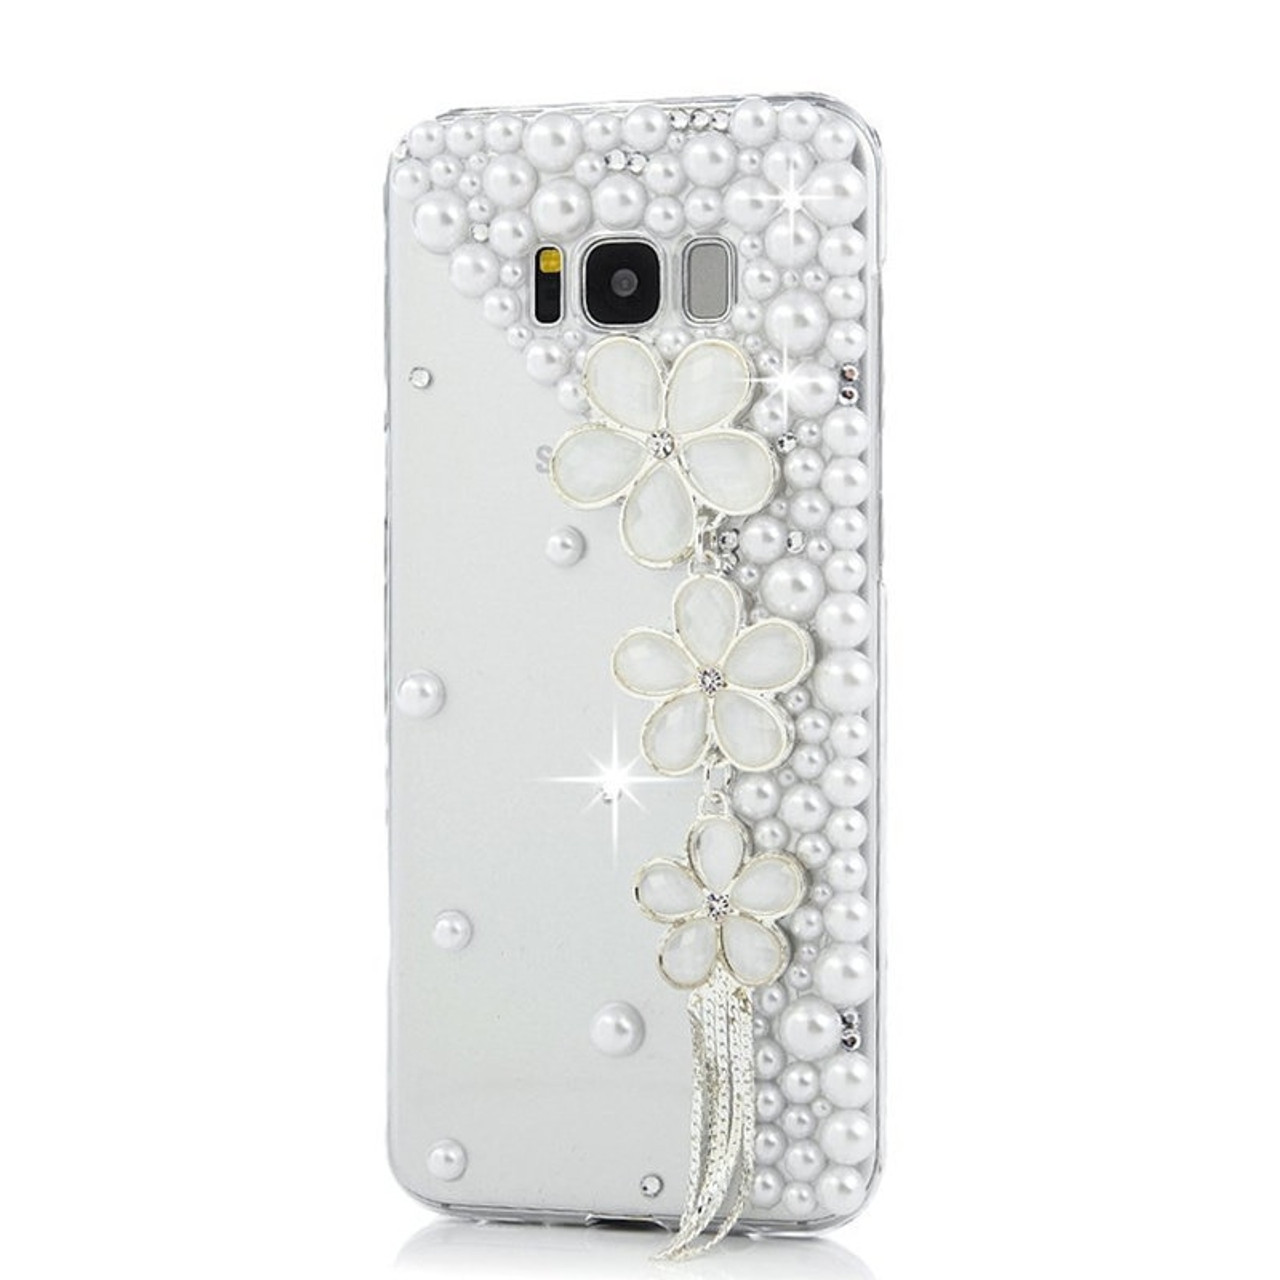 71912acf0ae ... S8 Plus Diamond Bling Rhinestone Case for Samsung Galaxy J7 Neo J3 J5  A3 A5 A7 ...